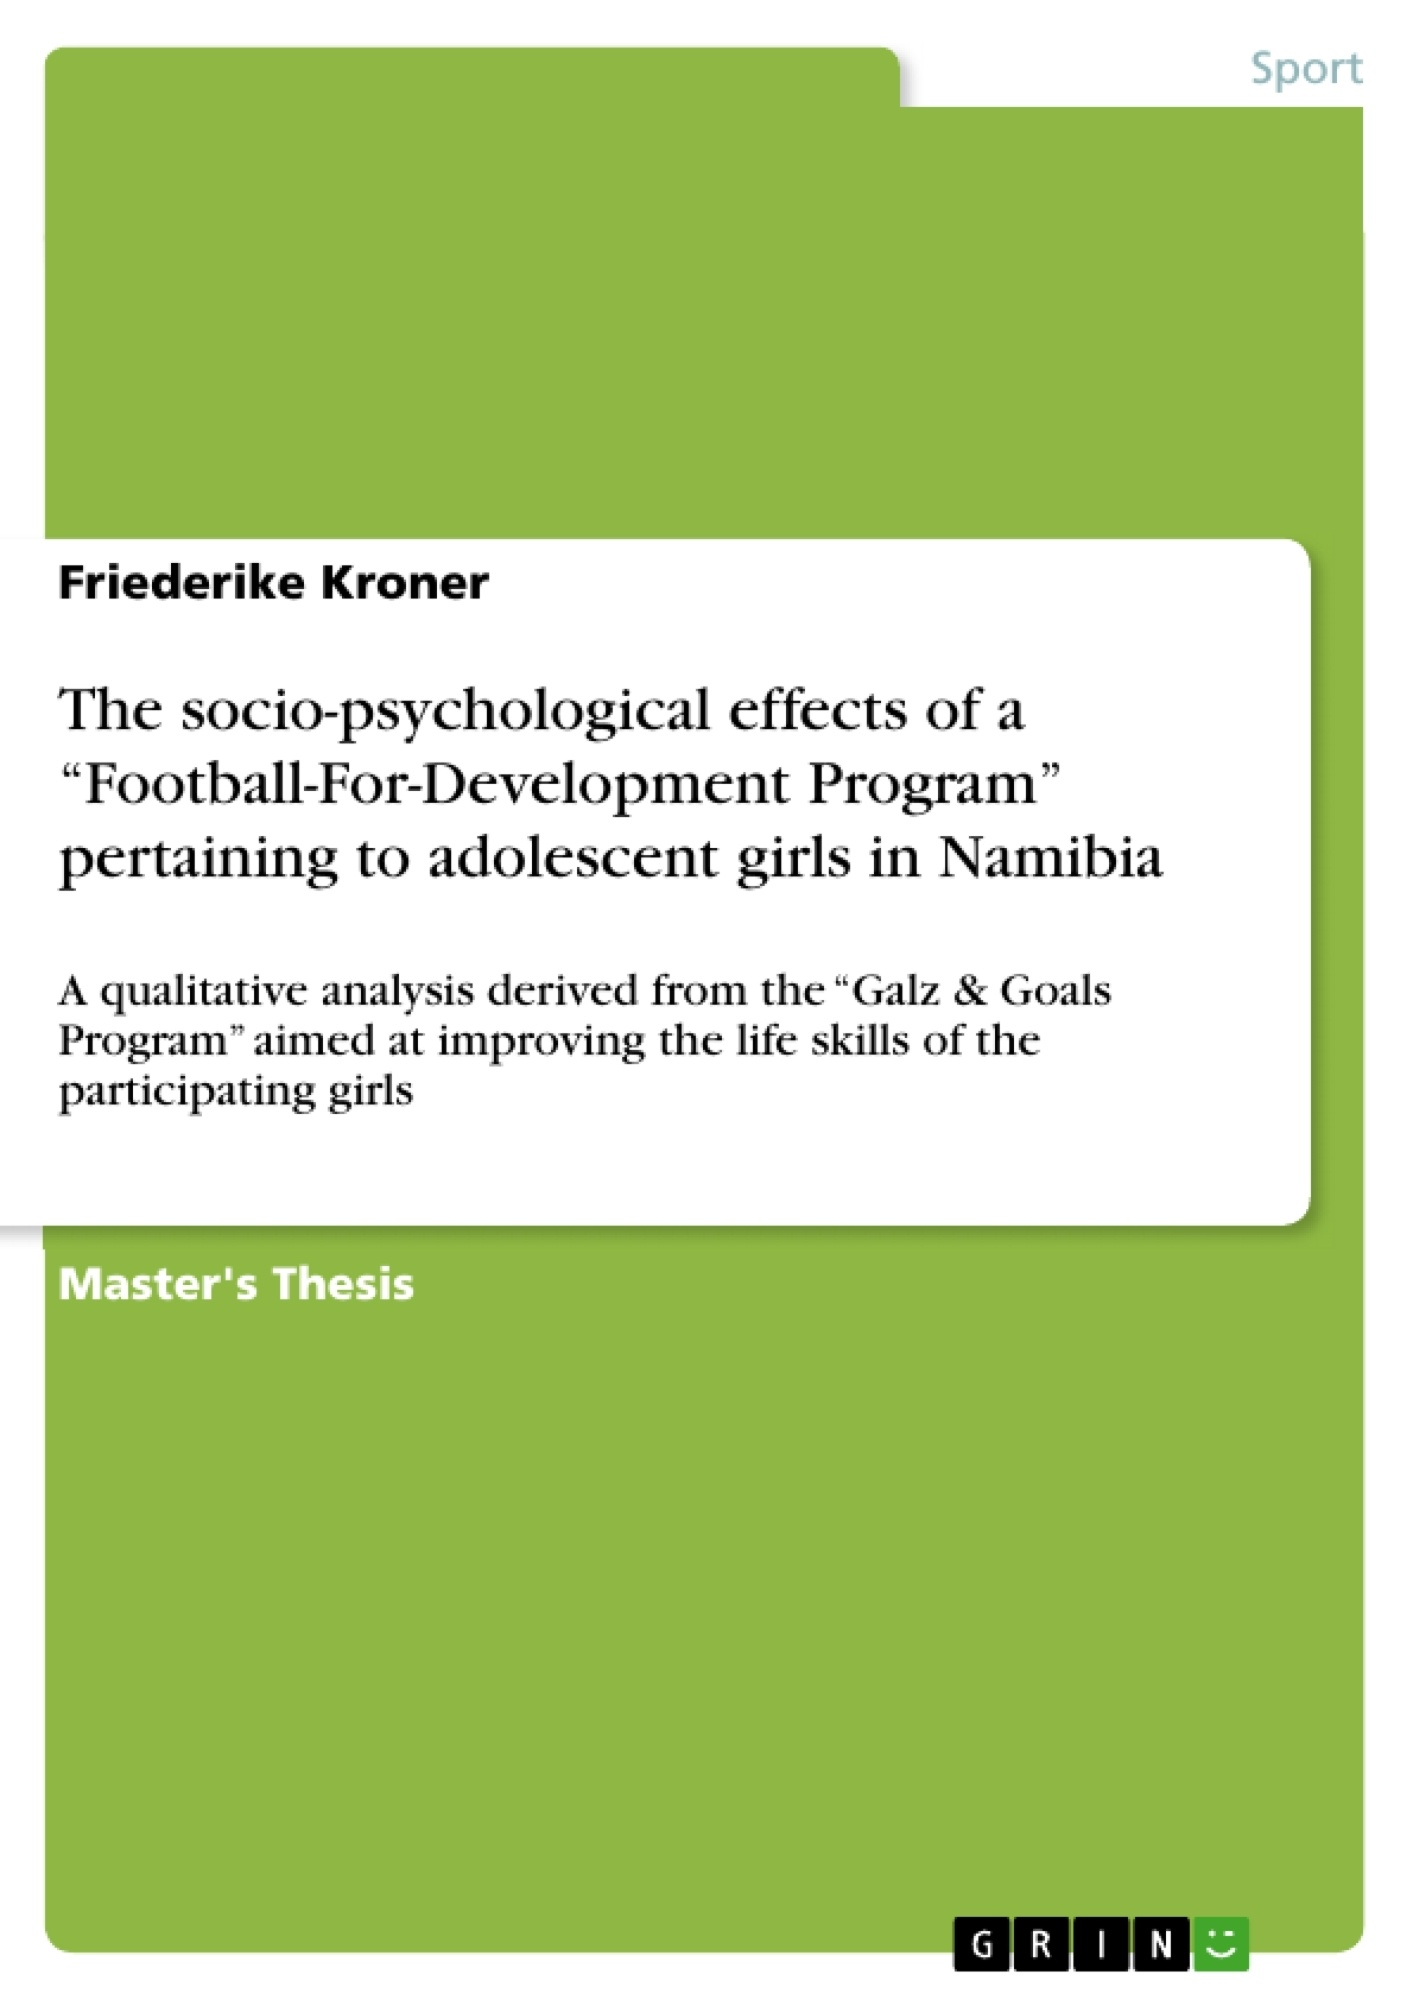 """Title: The socio-psychological effects of a """"Football-For-Development Program"""" pertaining to adolescent girls in Namibia"""